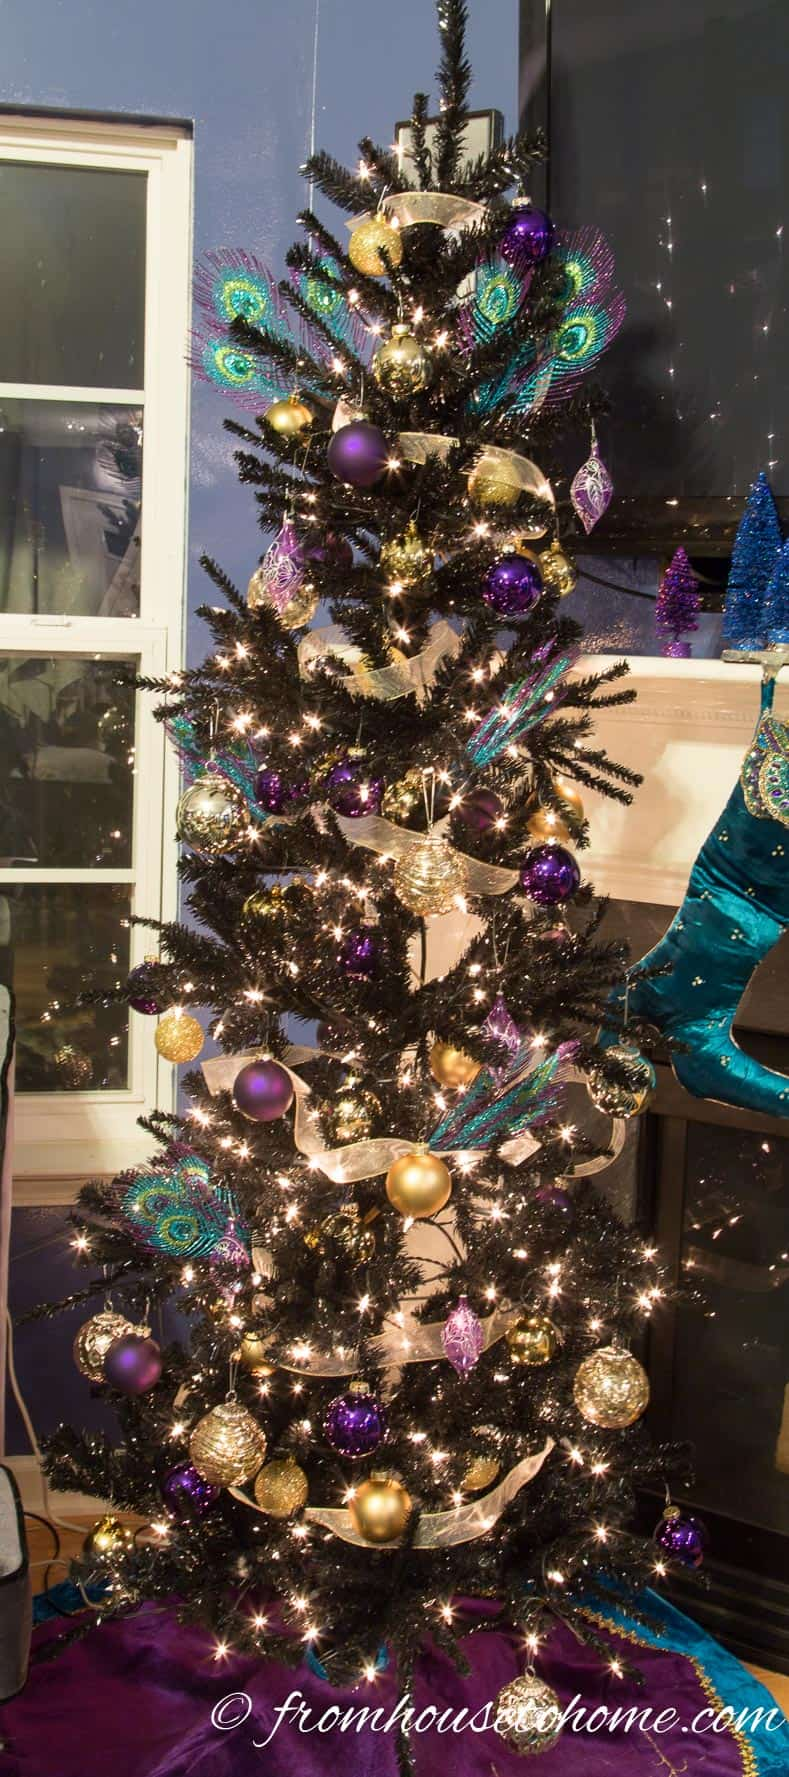 The tree with ball ornaments | How To Decorate a Beautiful Christmas Tree